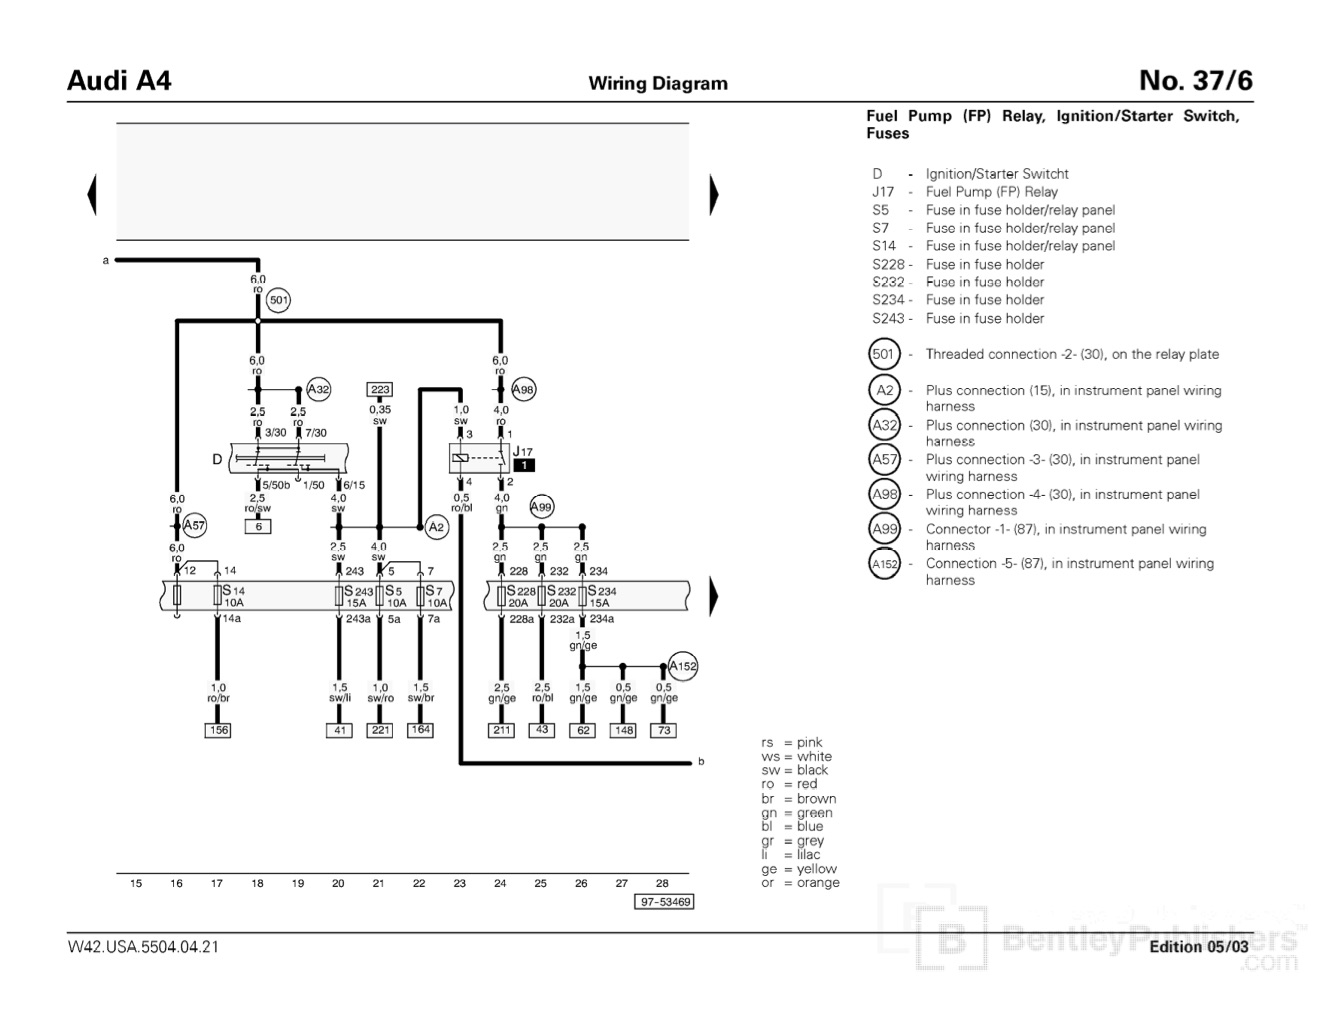 1991 Alfa Romeo Spider Fuse Box Diagram | Wiring Diagram  Alfa Romeo Spider Wiring Diagram on